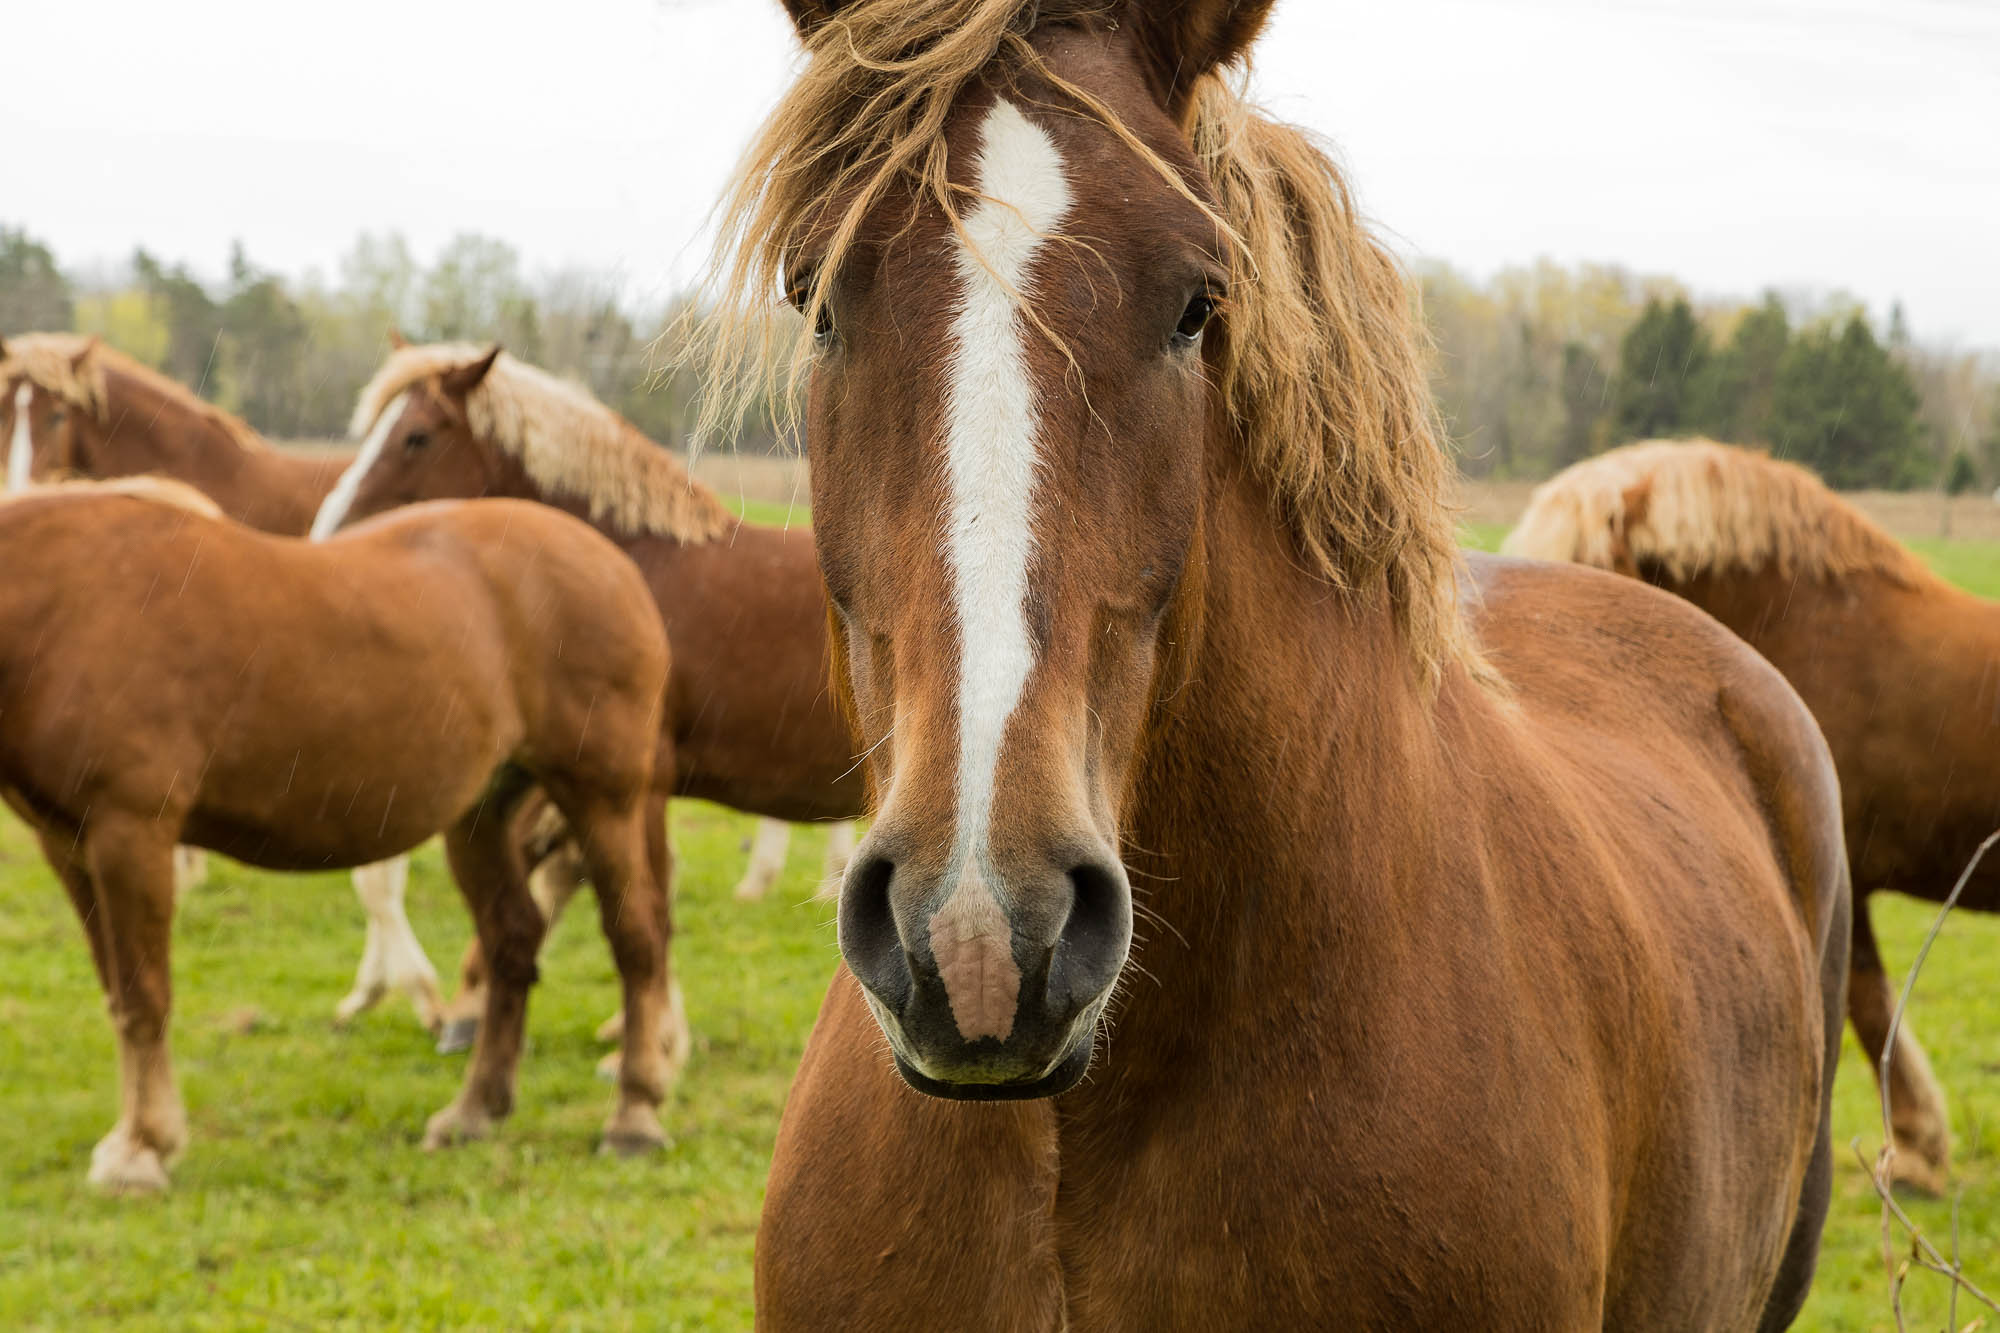 image of horse close up in country field